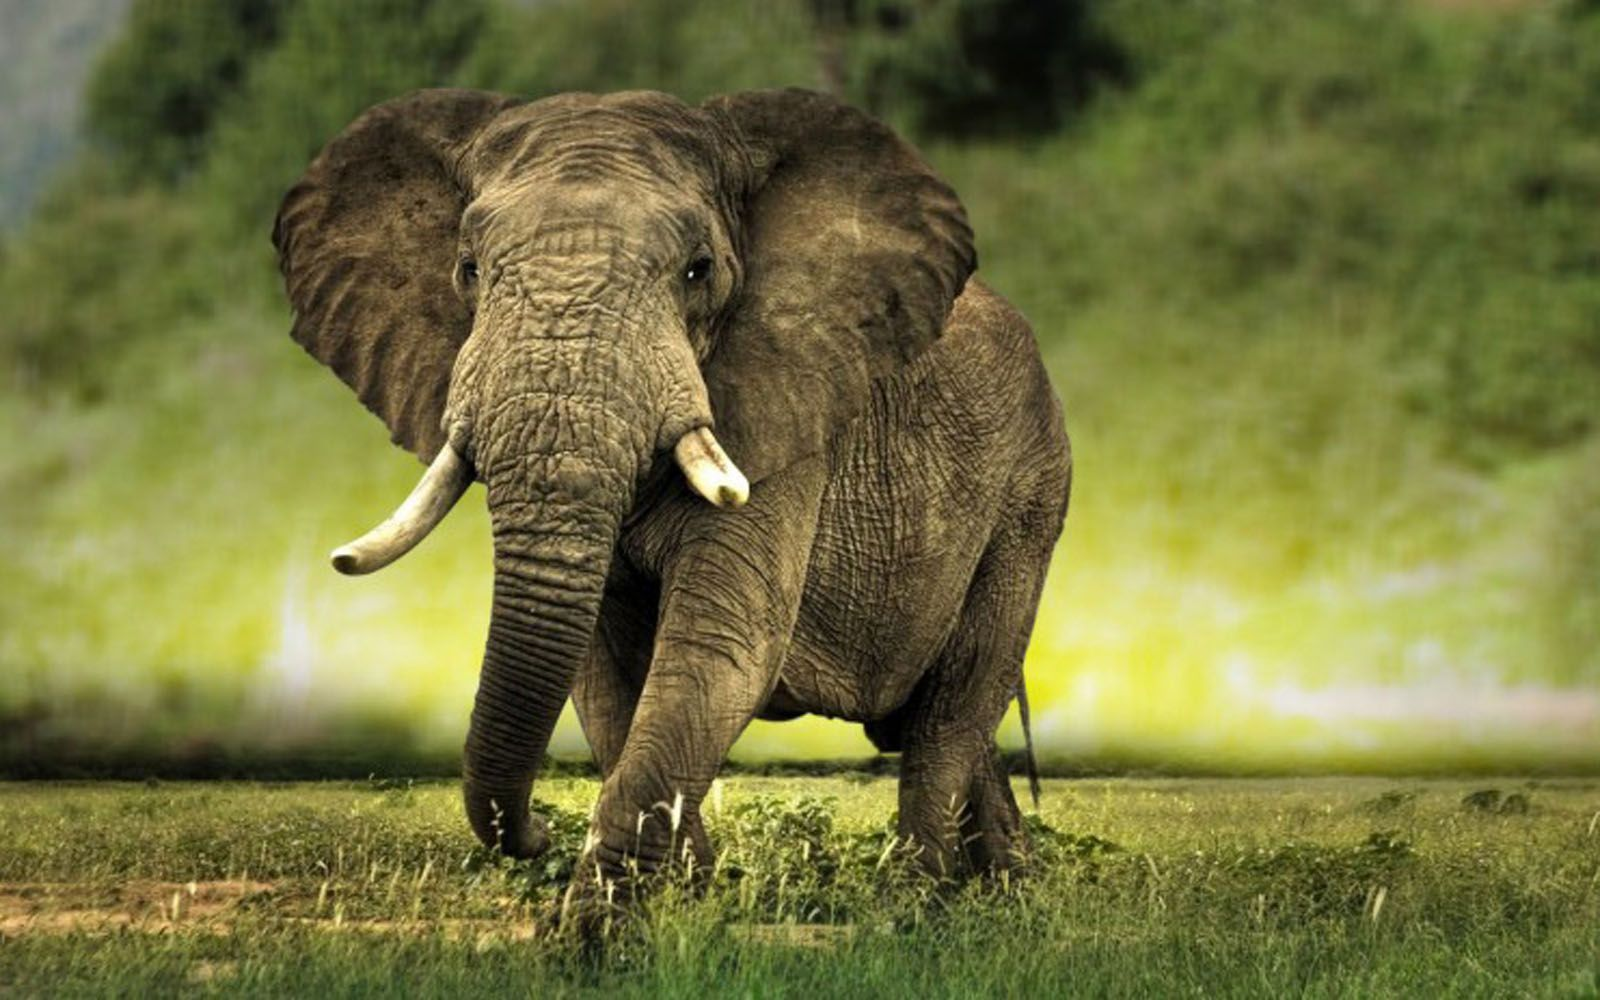 Baby Elephant Wallpapers Wallpaper × Elephant Wallpapers